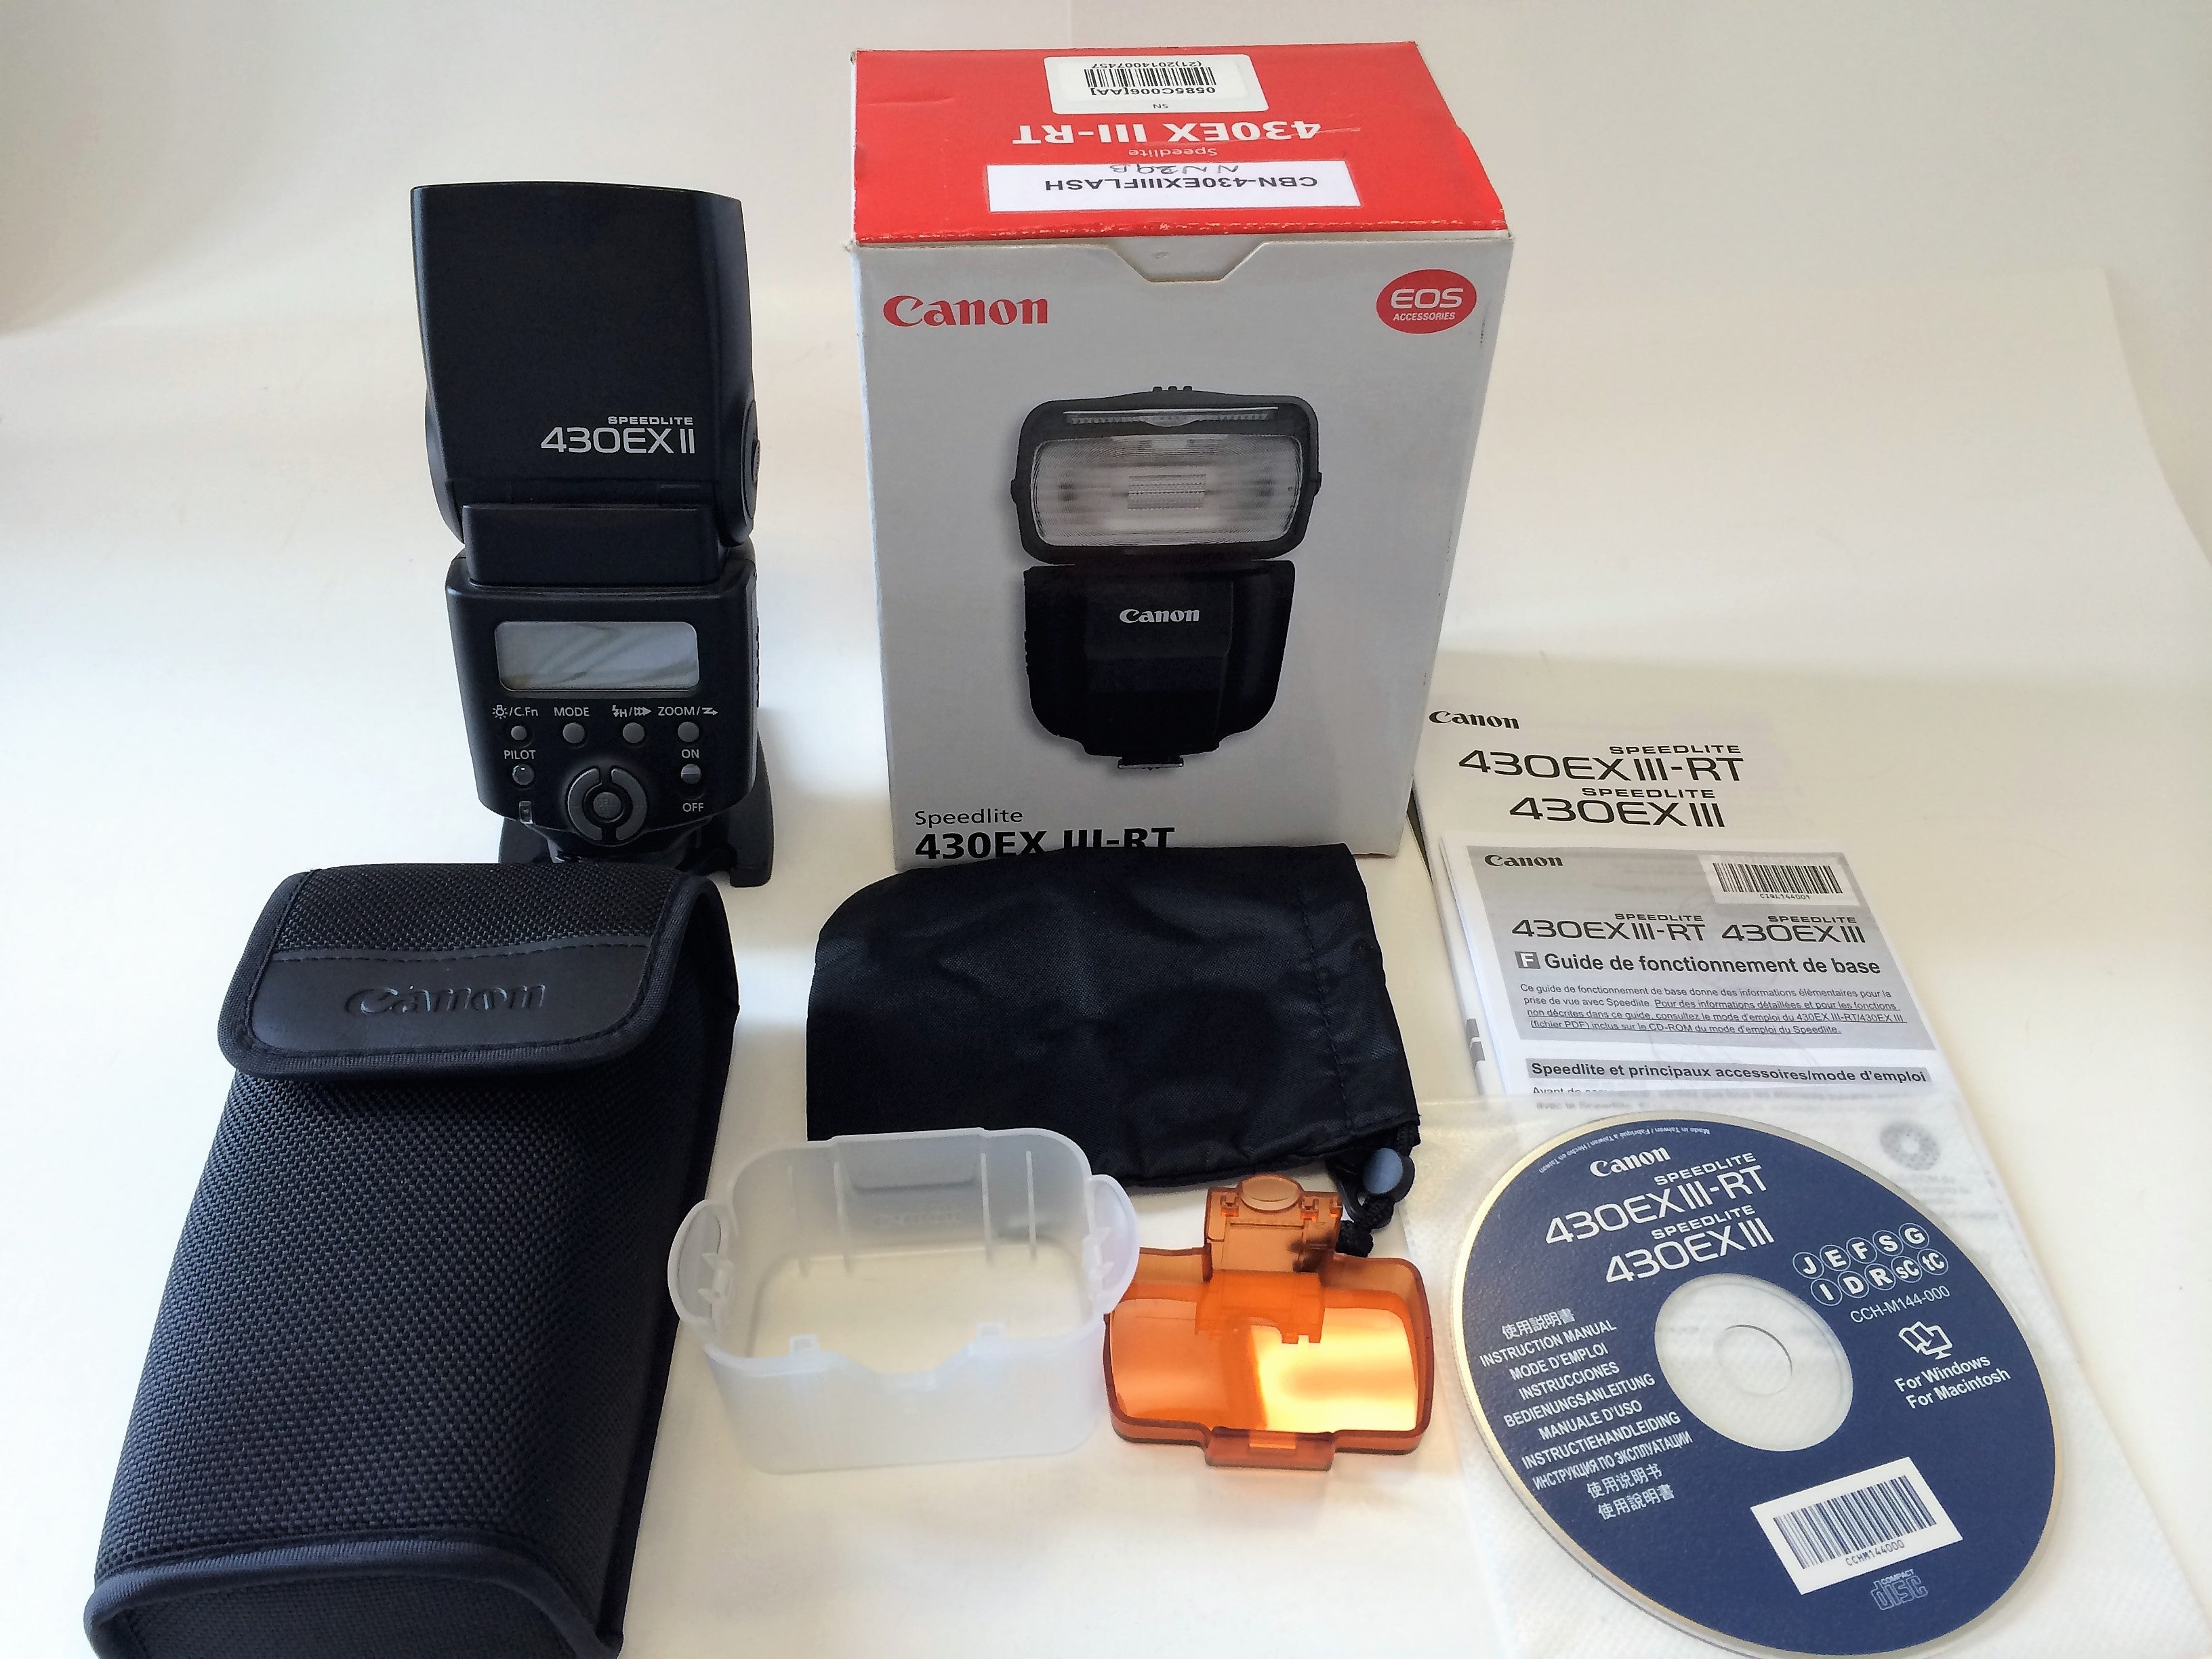 Canon Speedlite 430EX II Flash for Canon Digital SLR Cameras (FOR PARTS)